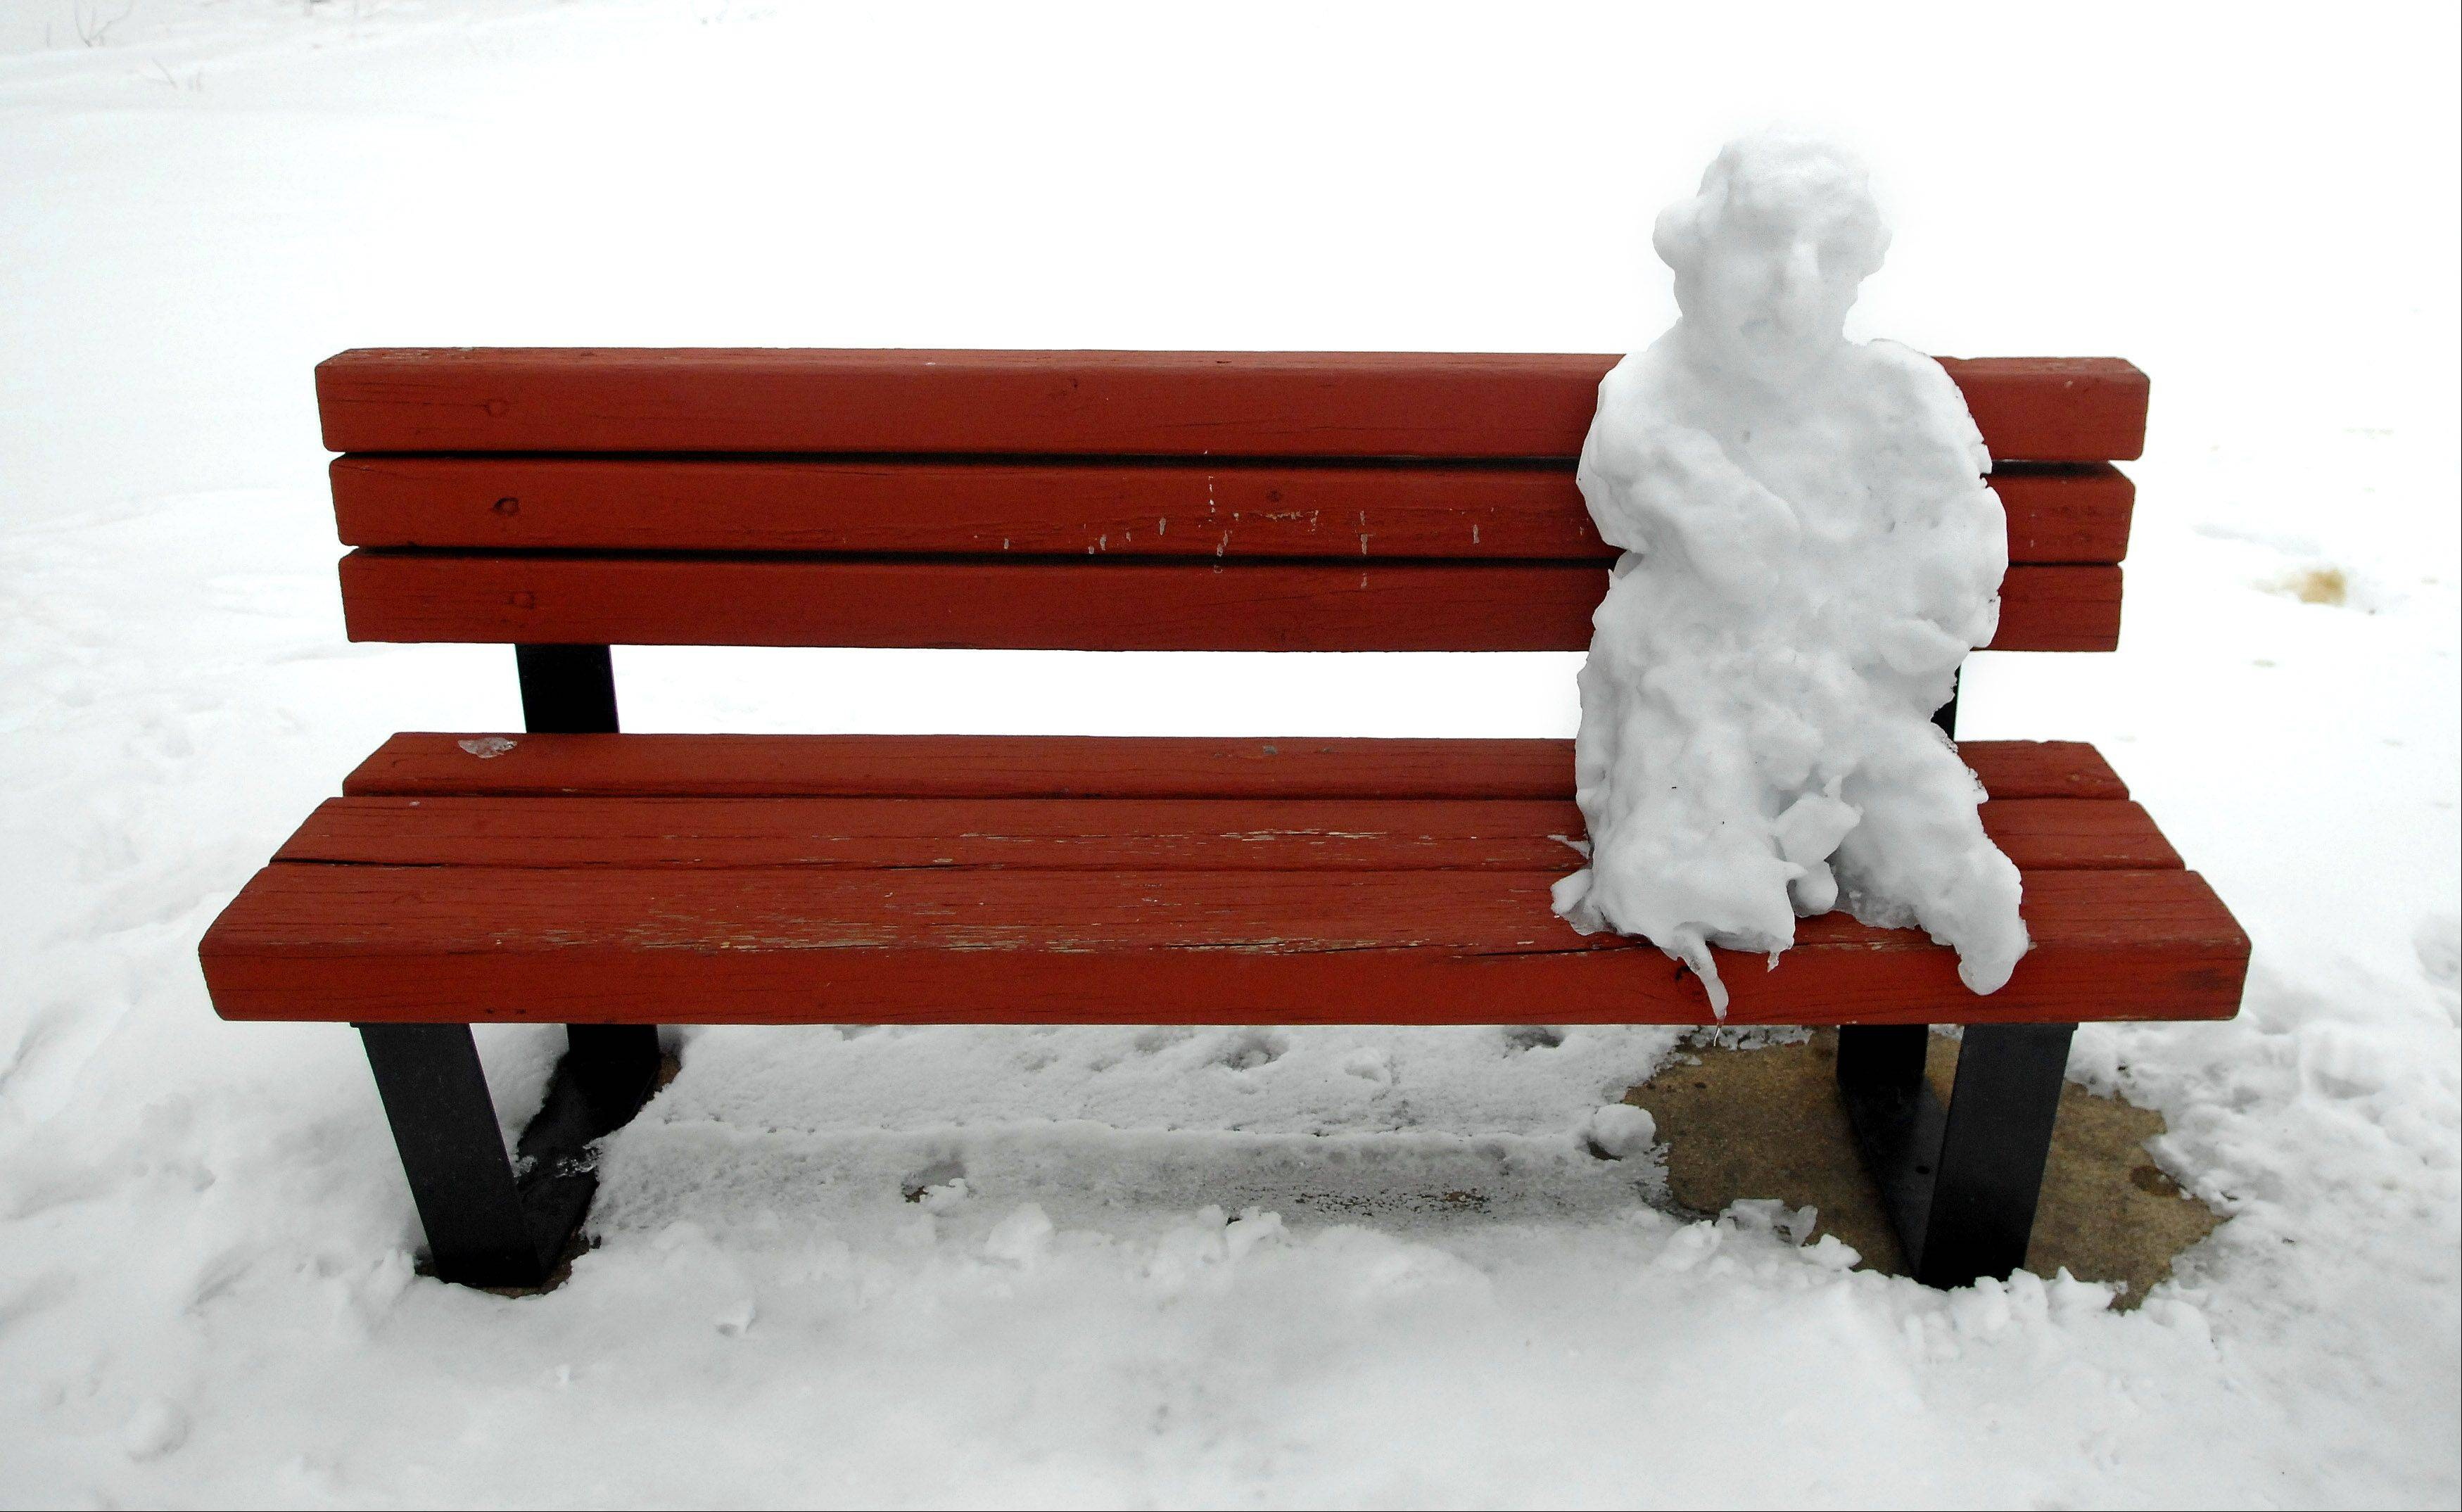 A snowman perched on a bench is the only sign of life at Ferson Creek Park in St. Charles Monday morni